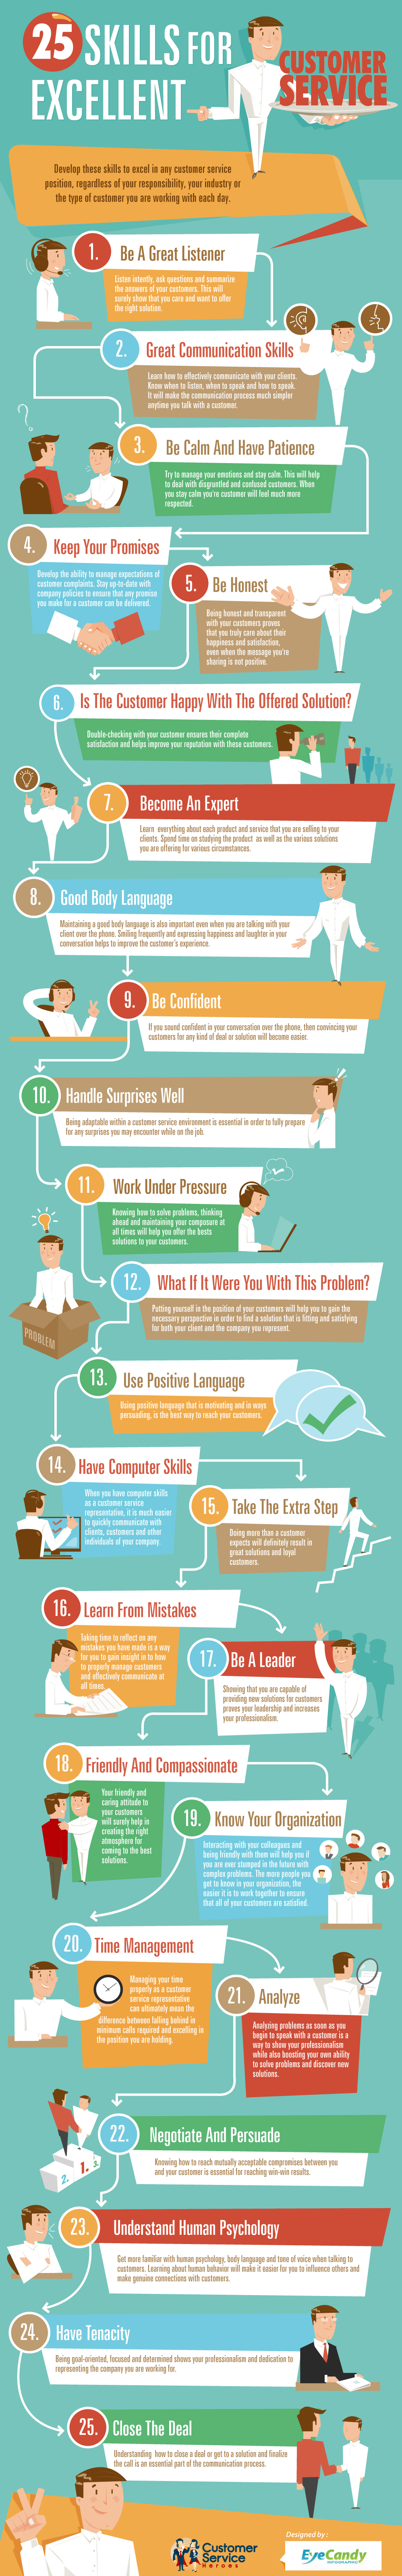 How to develop the skills to excel in any customer service position : infographic